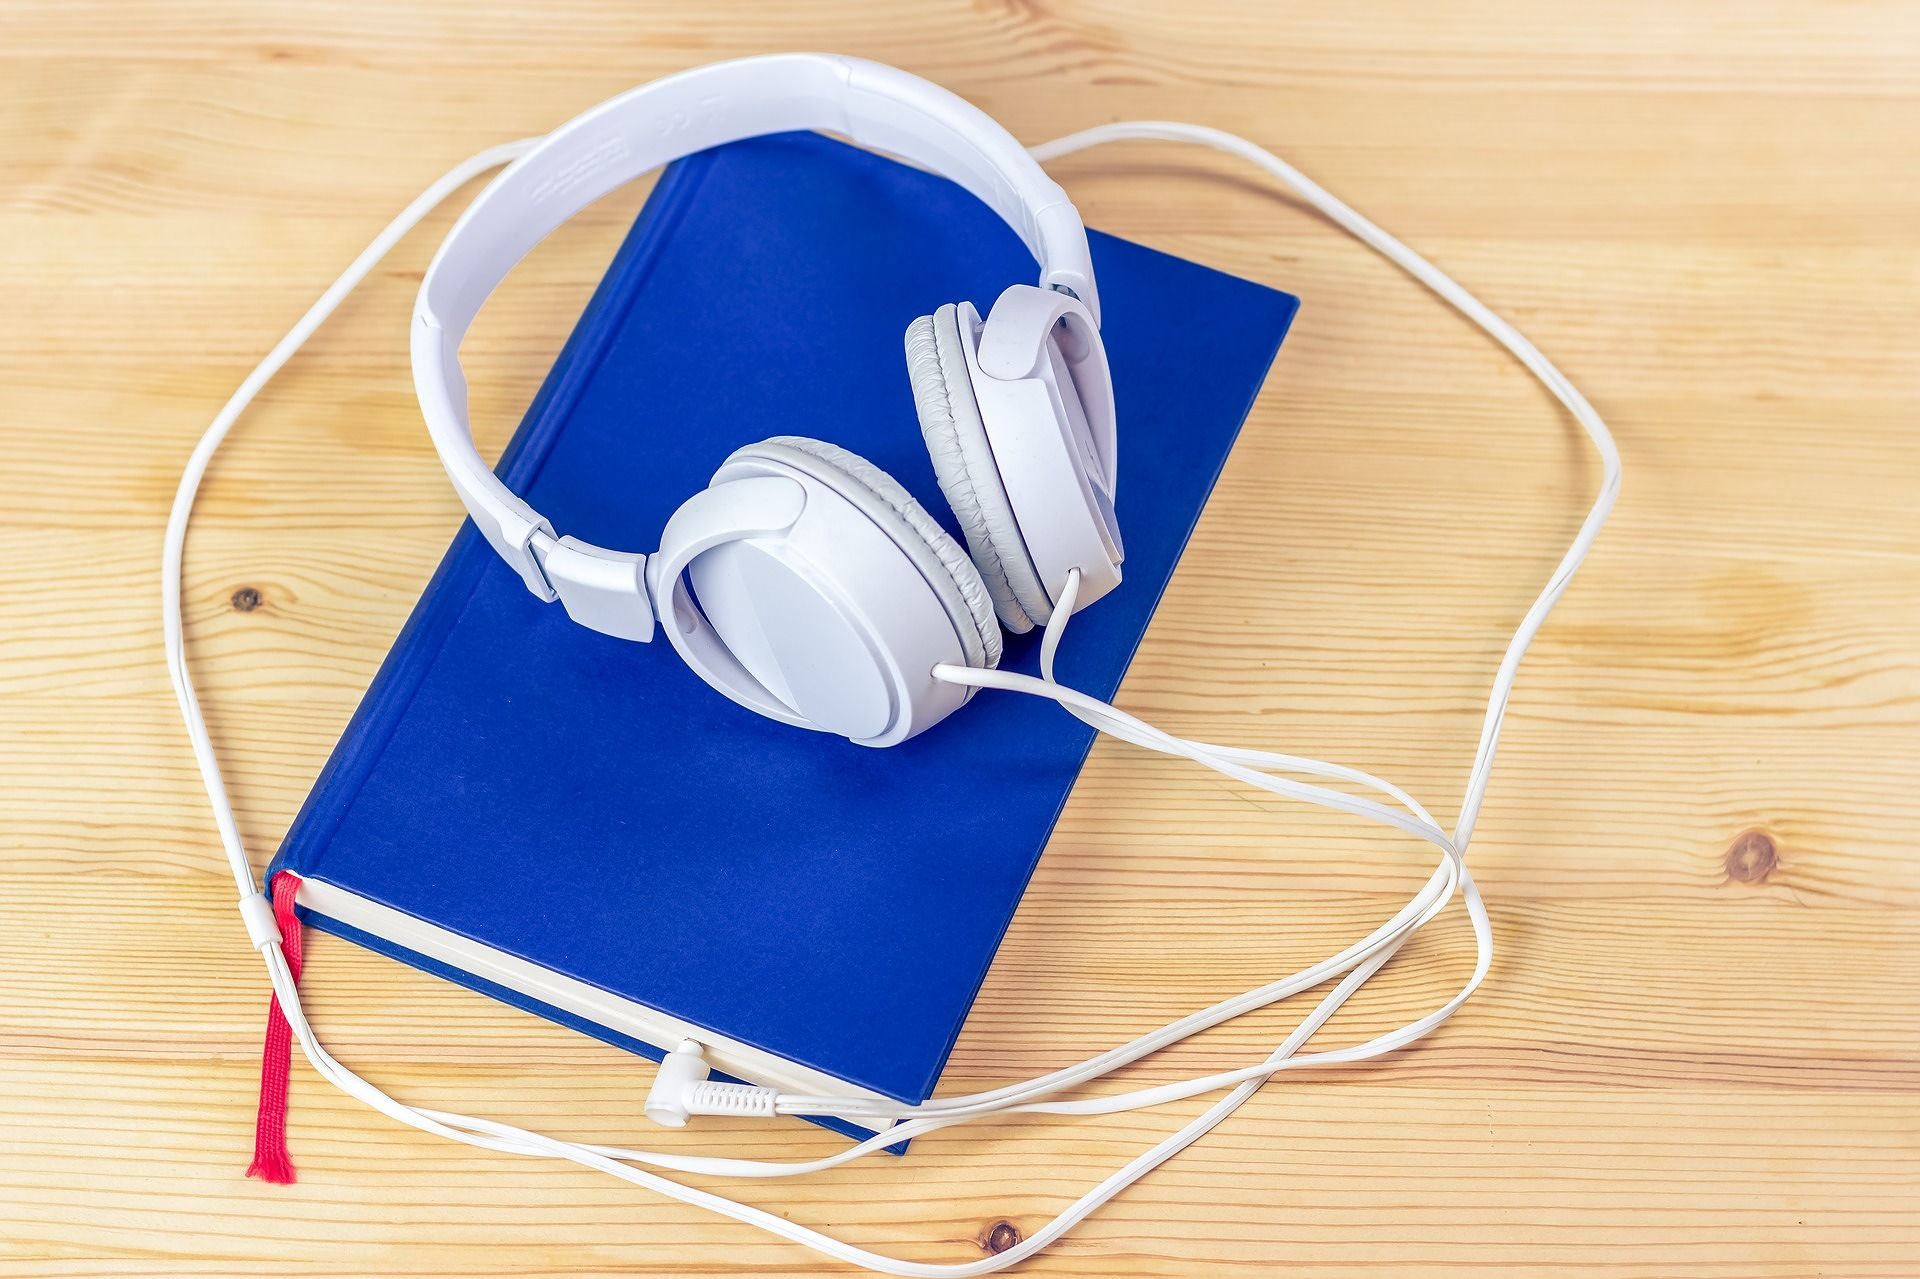 Virtual Book Club for Teens - Audiobooks